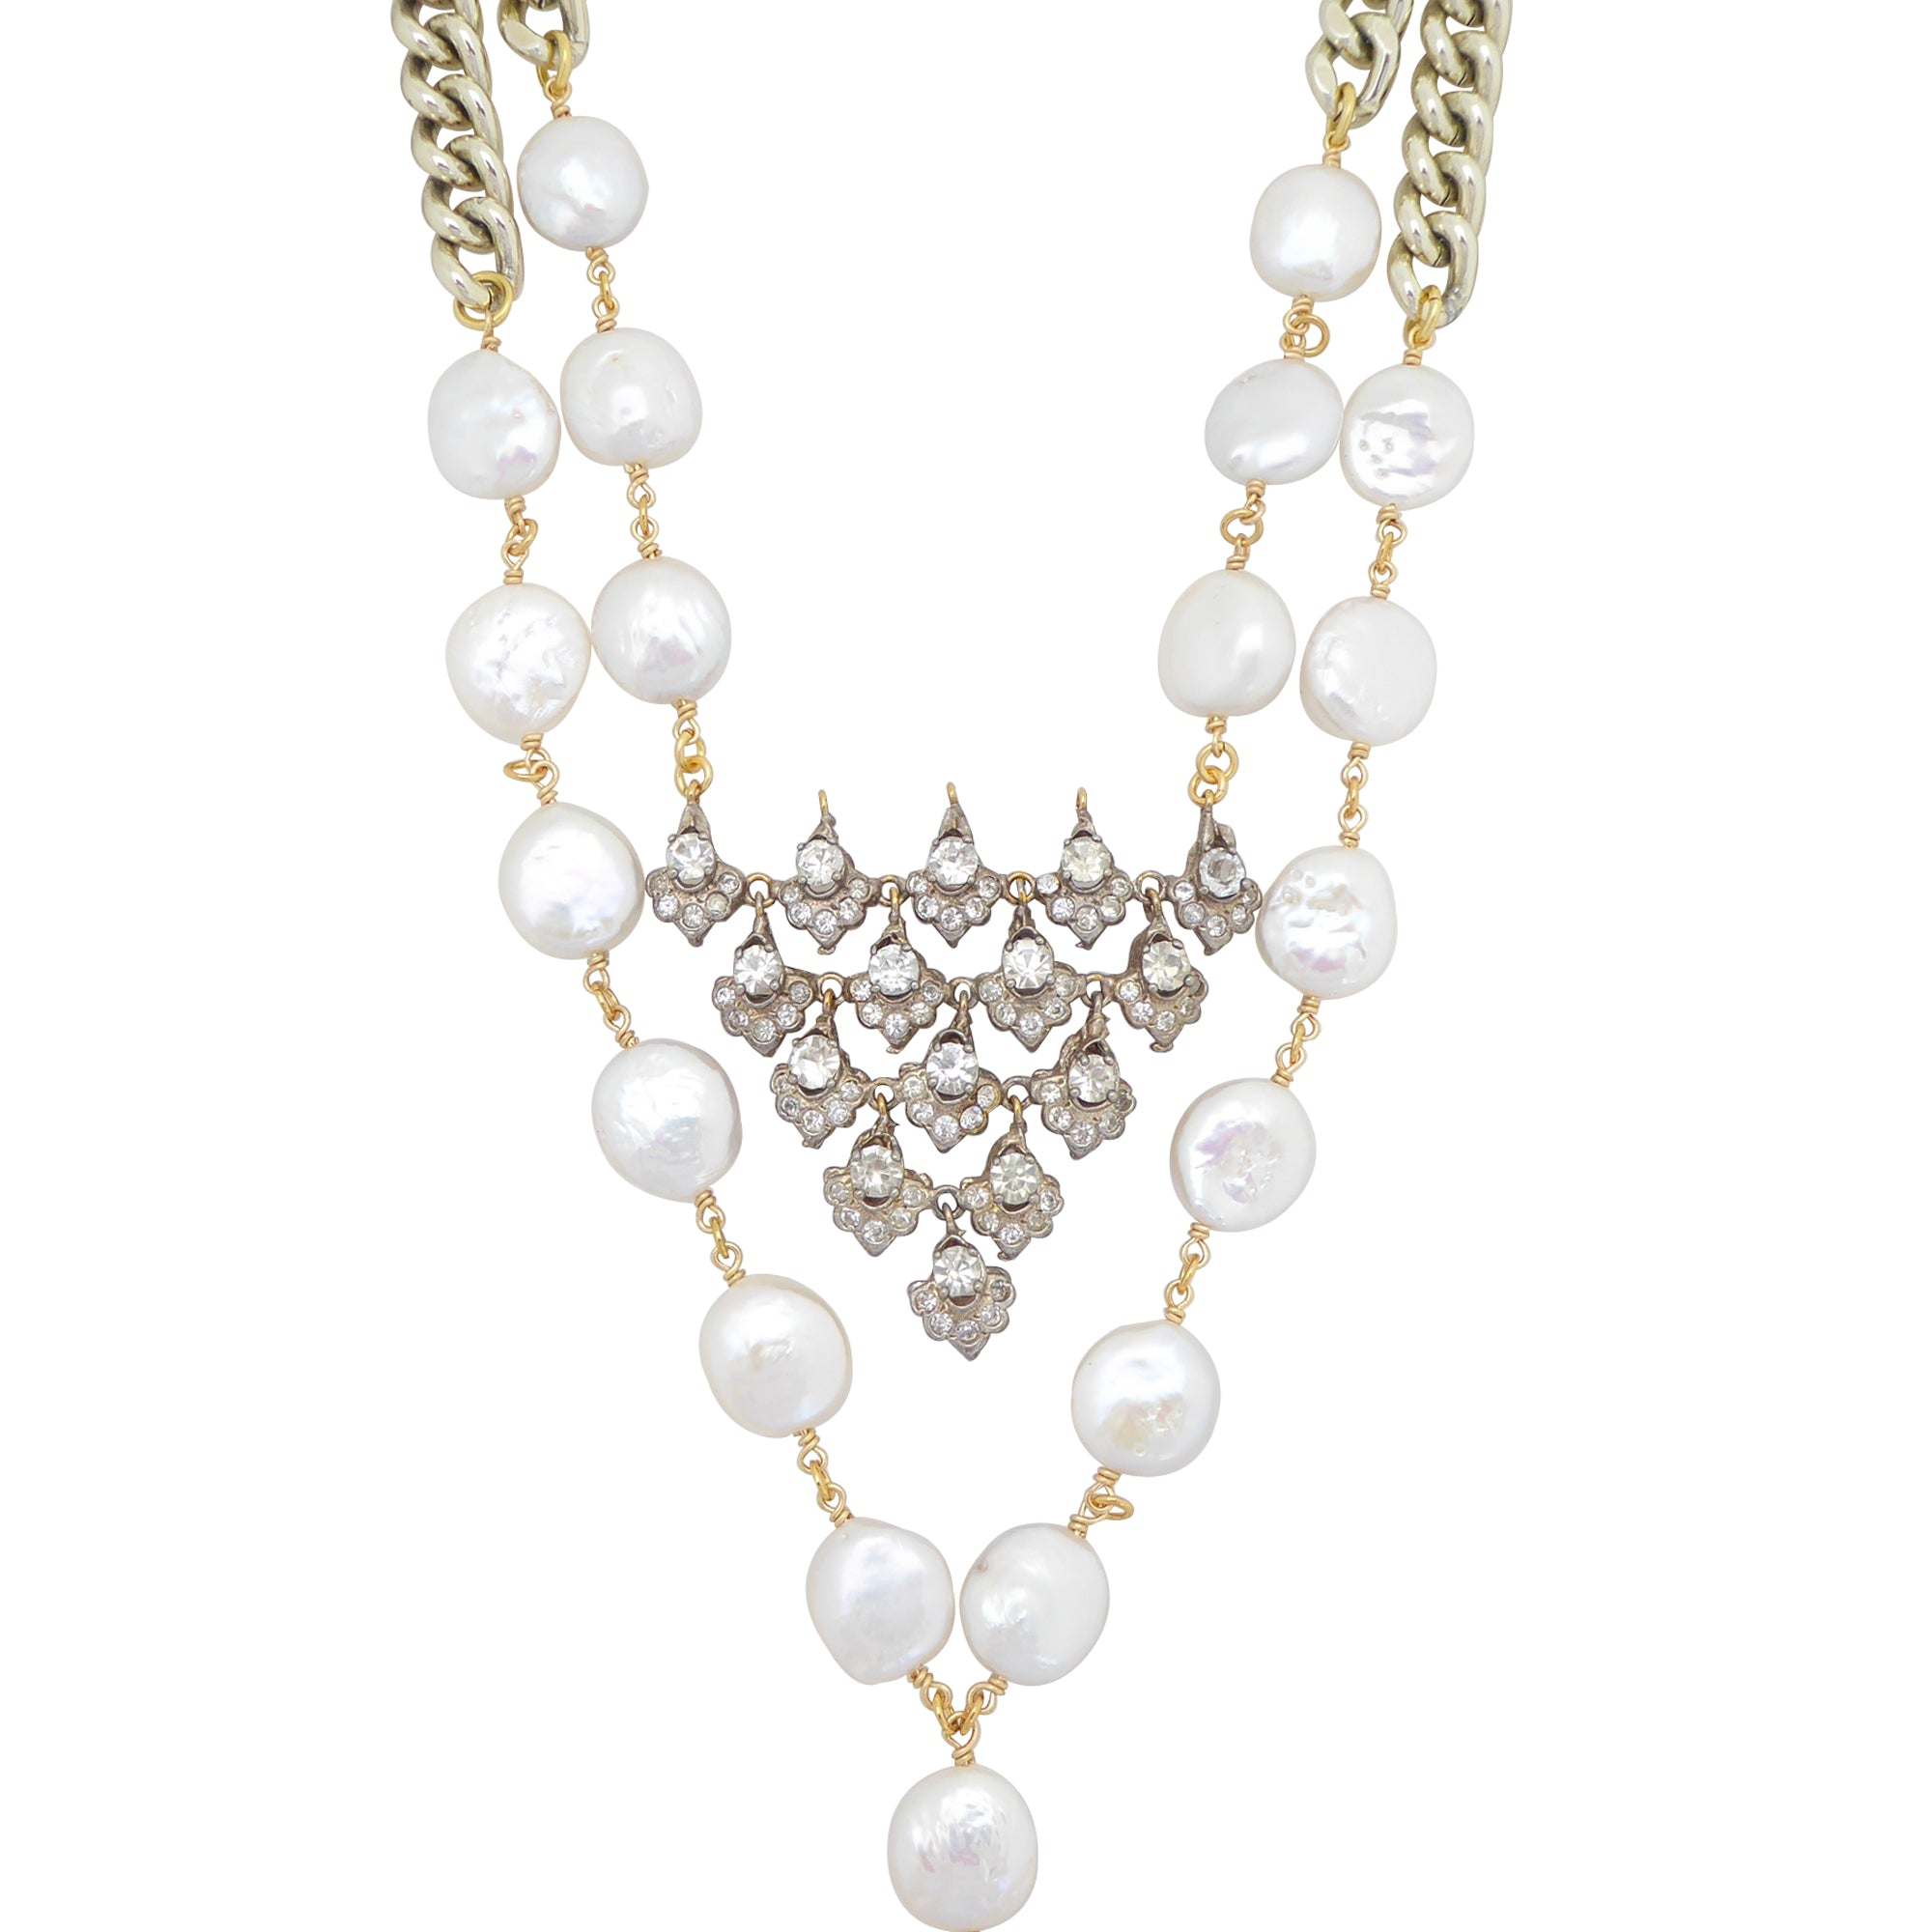 Celestial pearl necklace